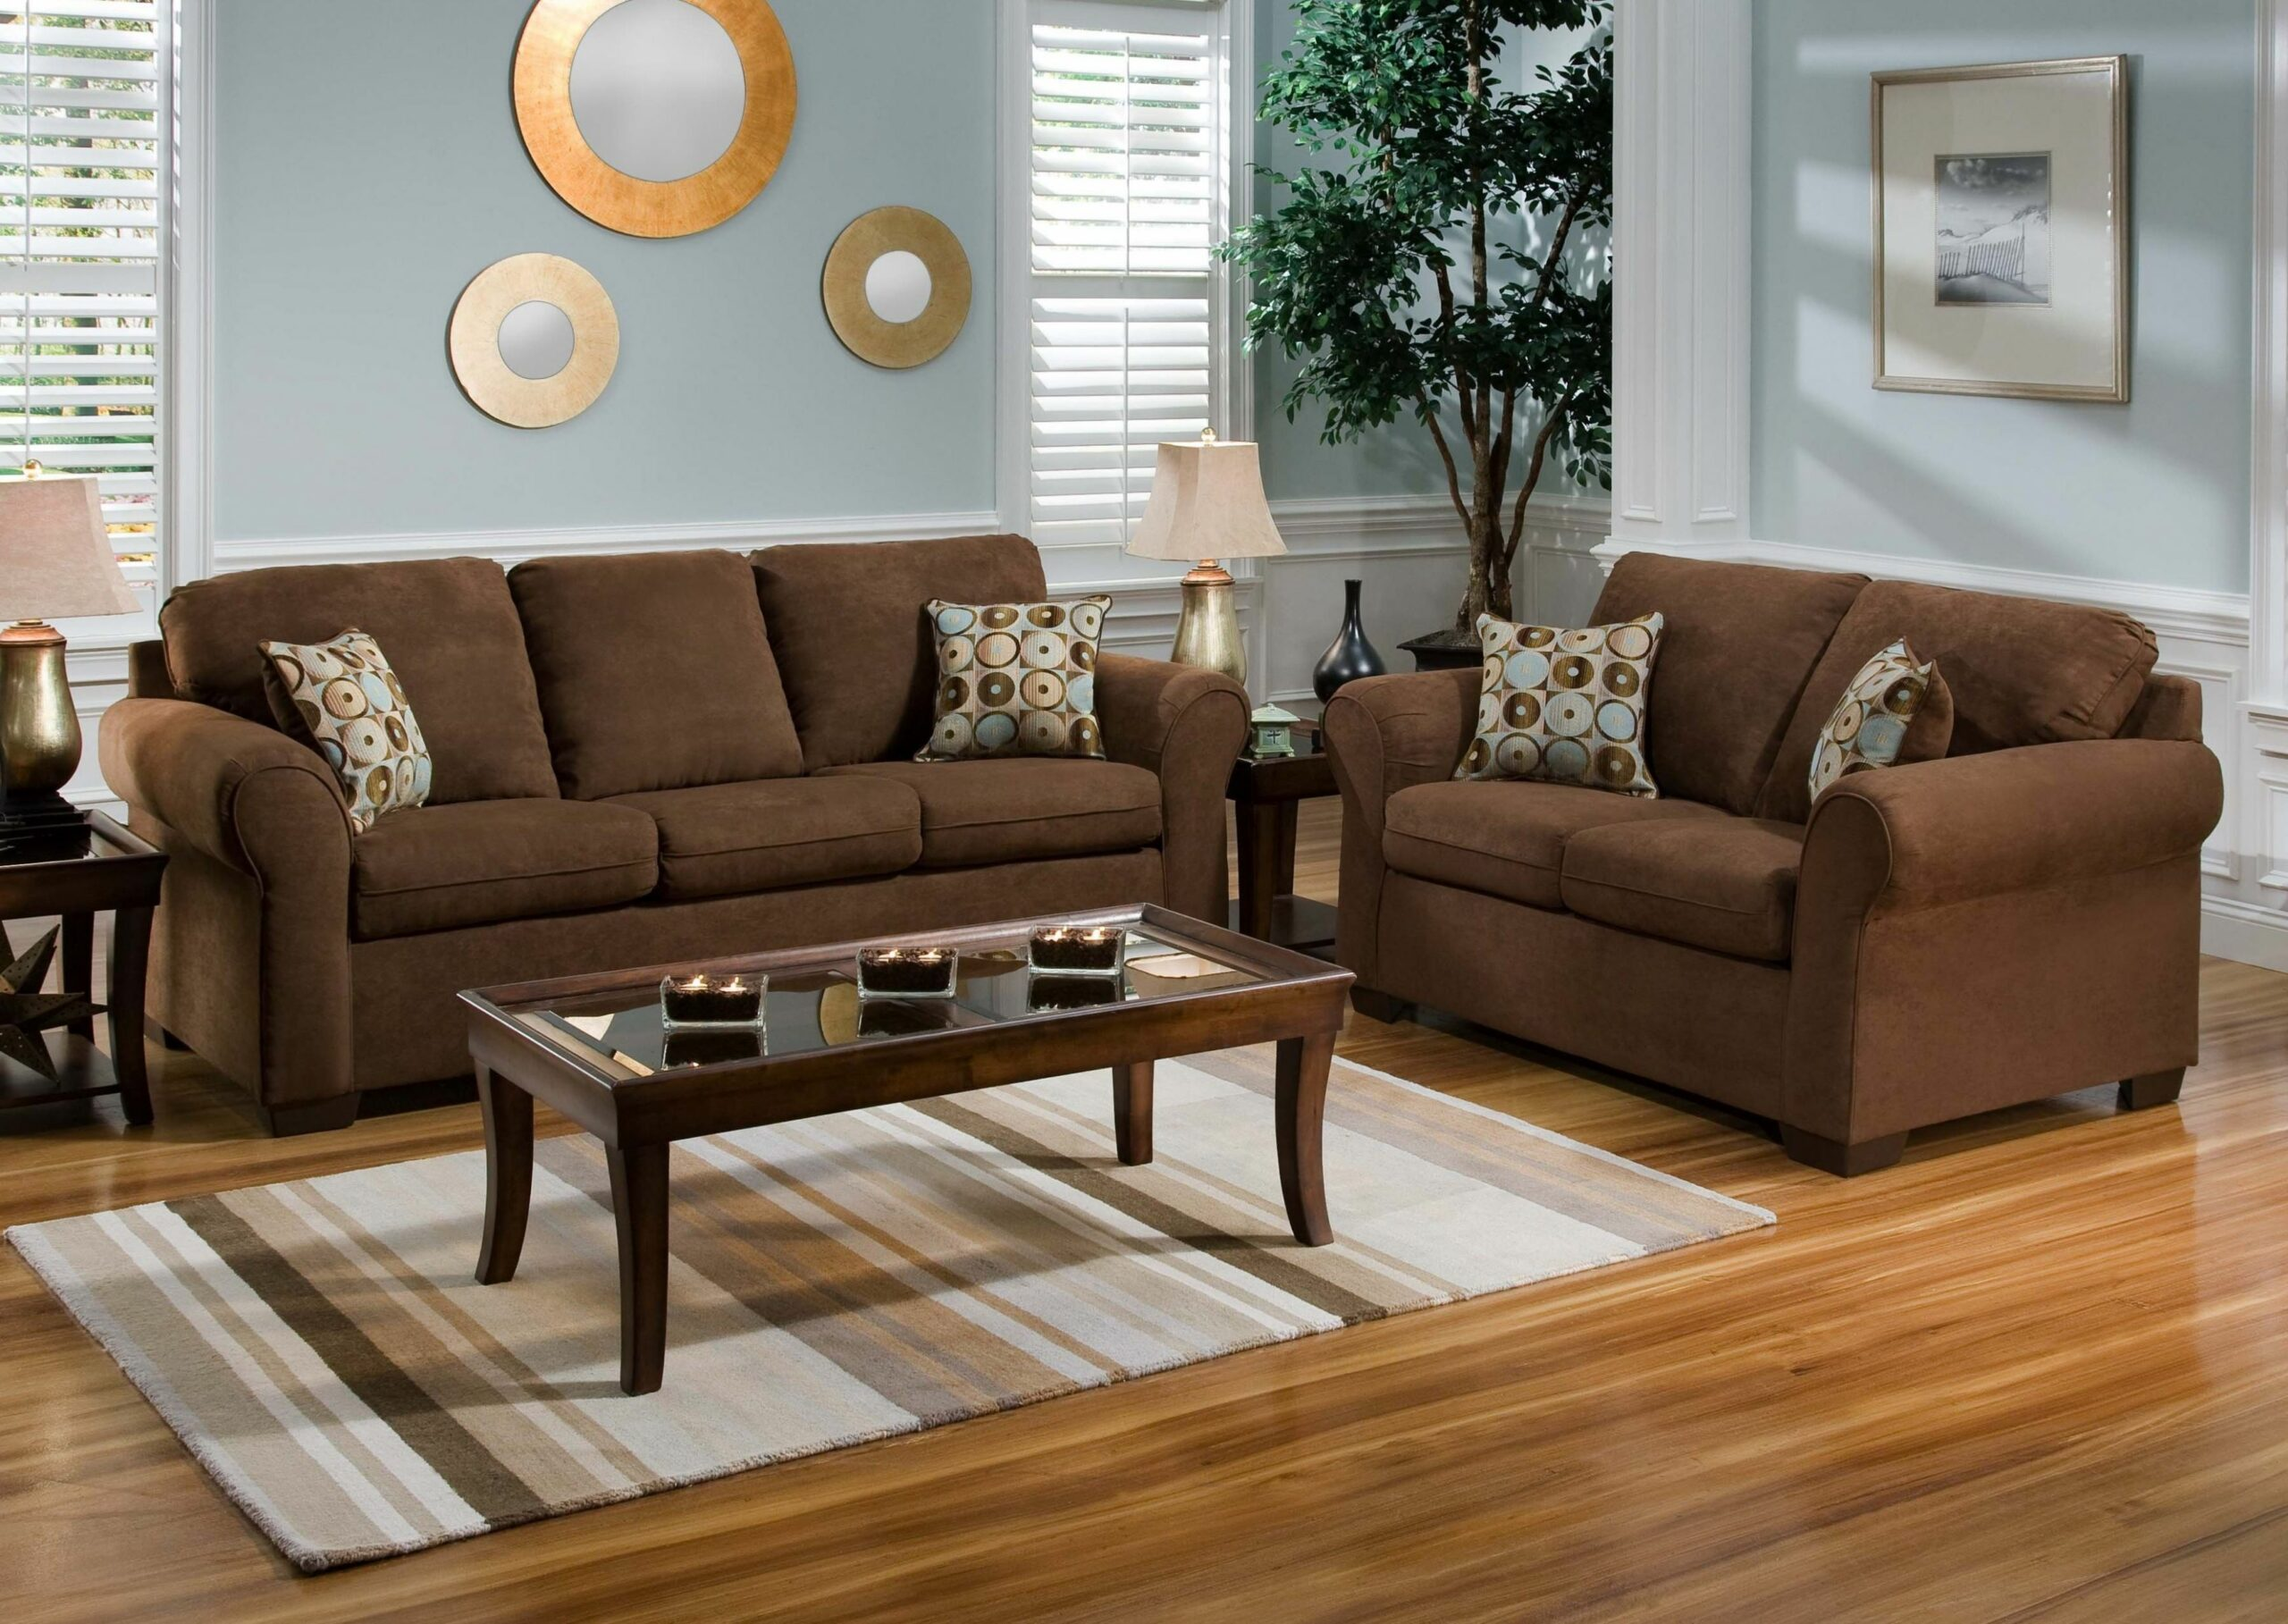 Living Room Ideas With Brown Sofas | Brown couch living room ..